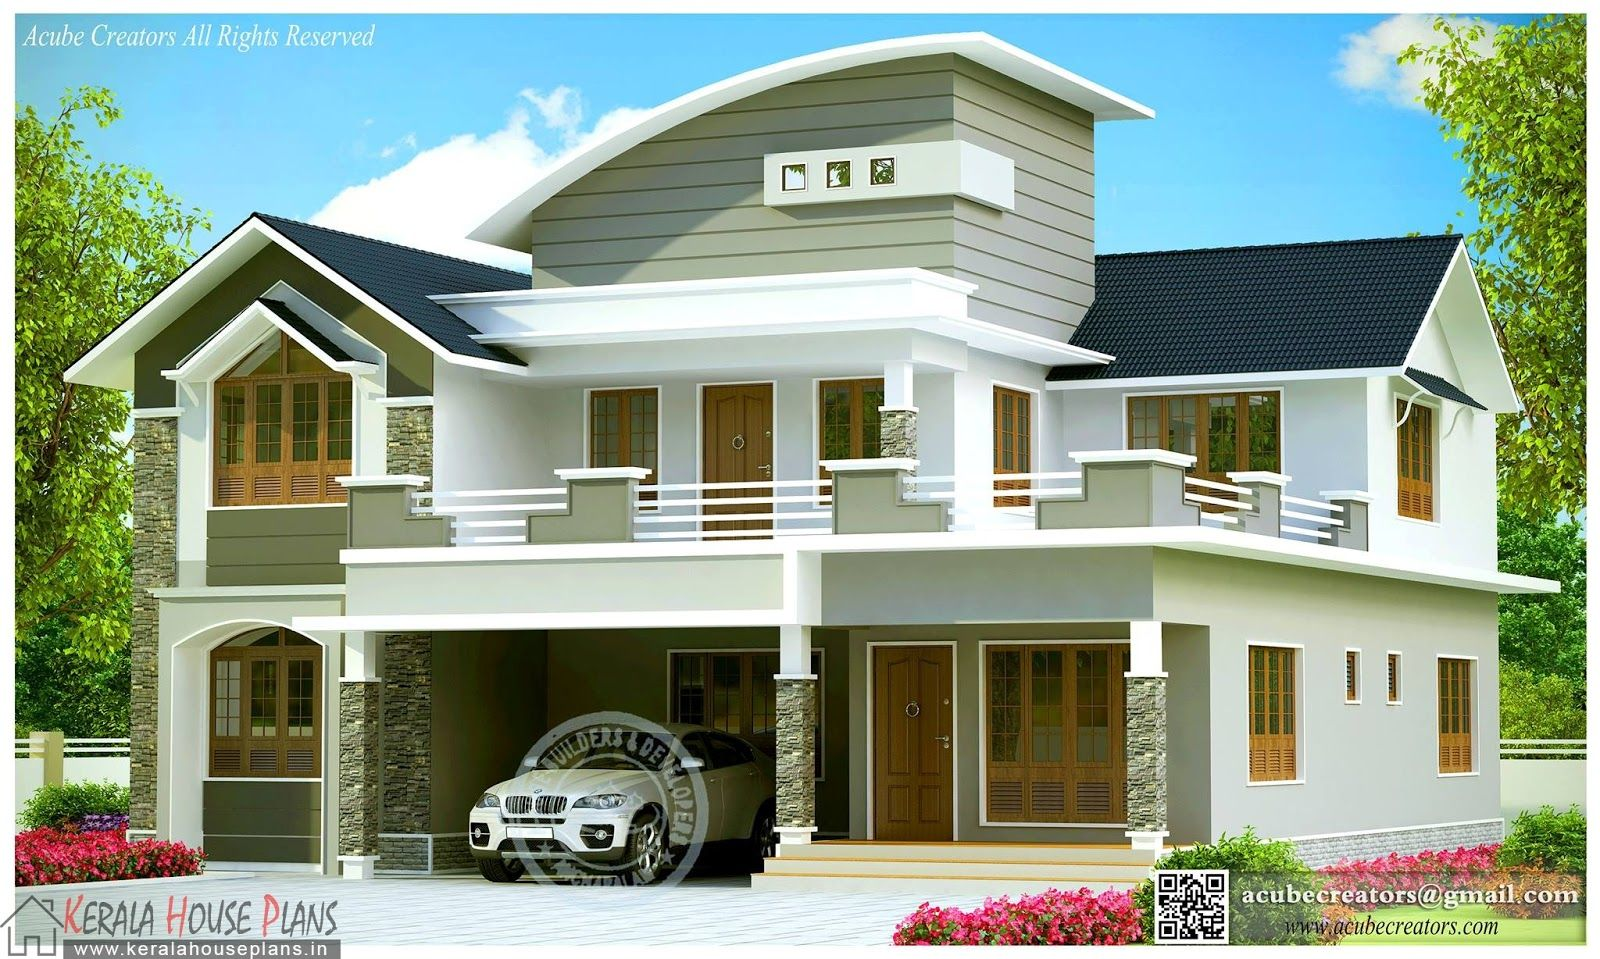 1800sqft Mixed Roof Kerala House Design Kerala House Plans Designs Floor Plans And Eleva Courtyard House Plans Kerala House Design Contemporary House Design